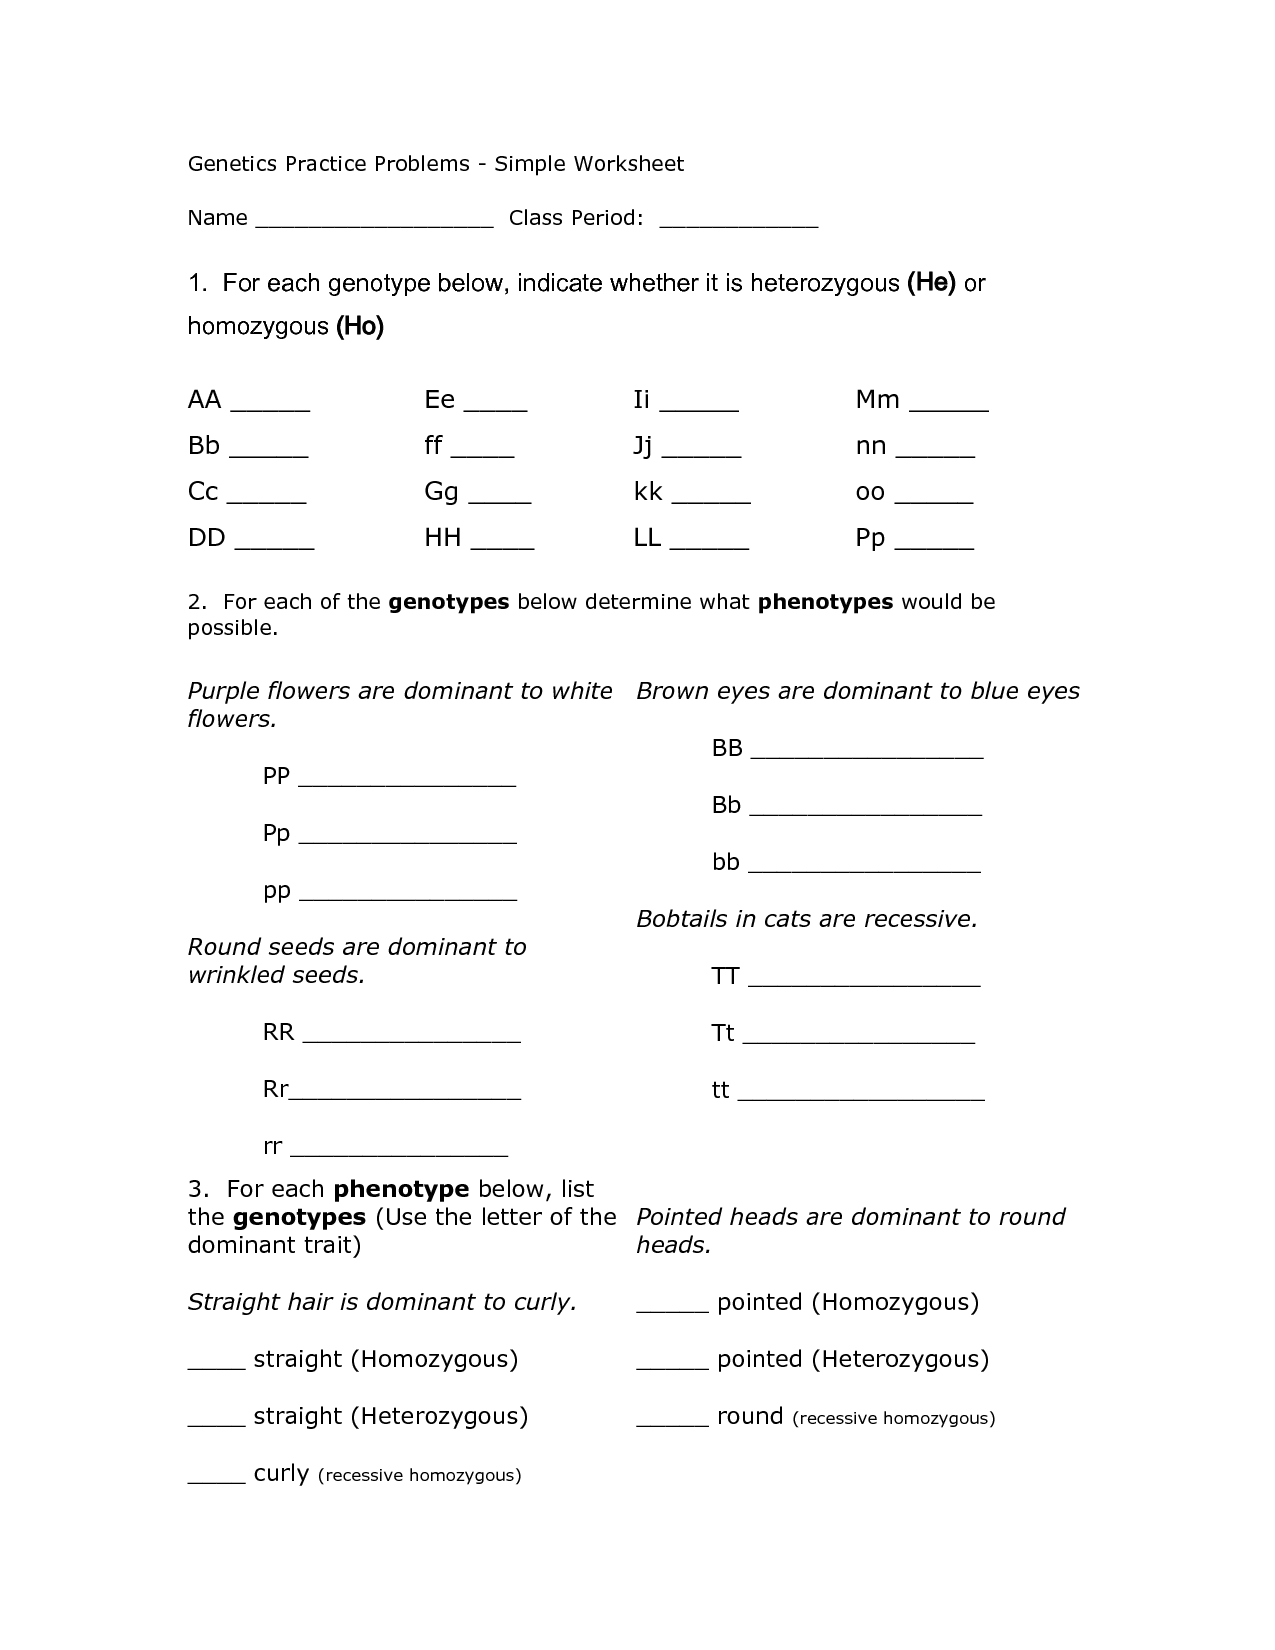 14 Best Images Of Genetics Problems Worksheet And Answers